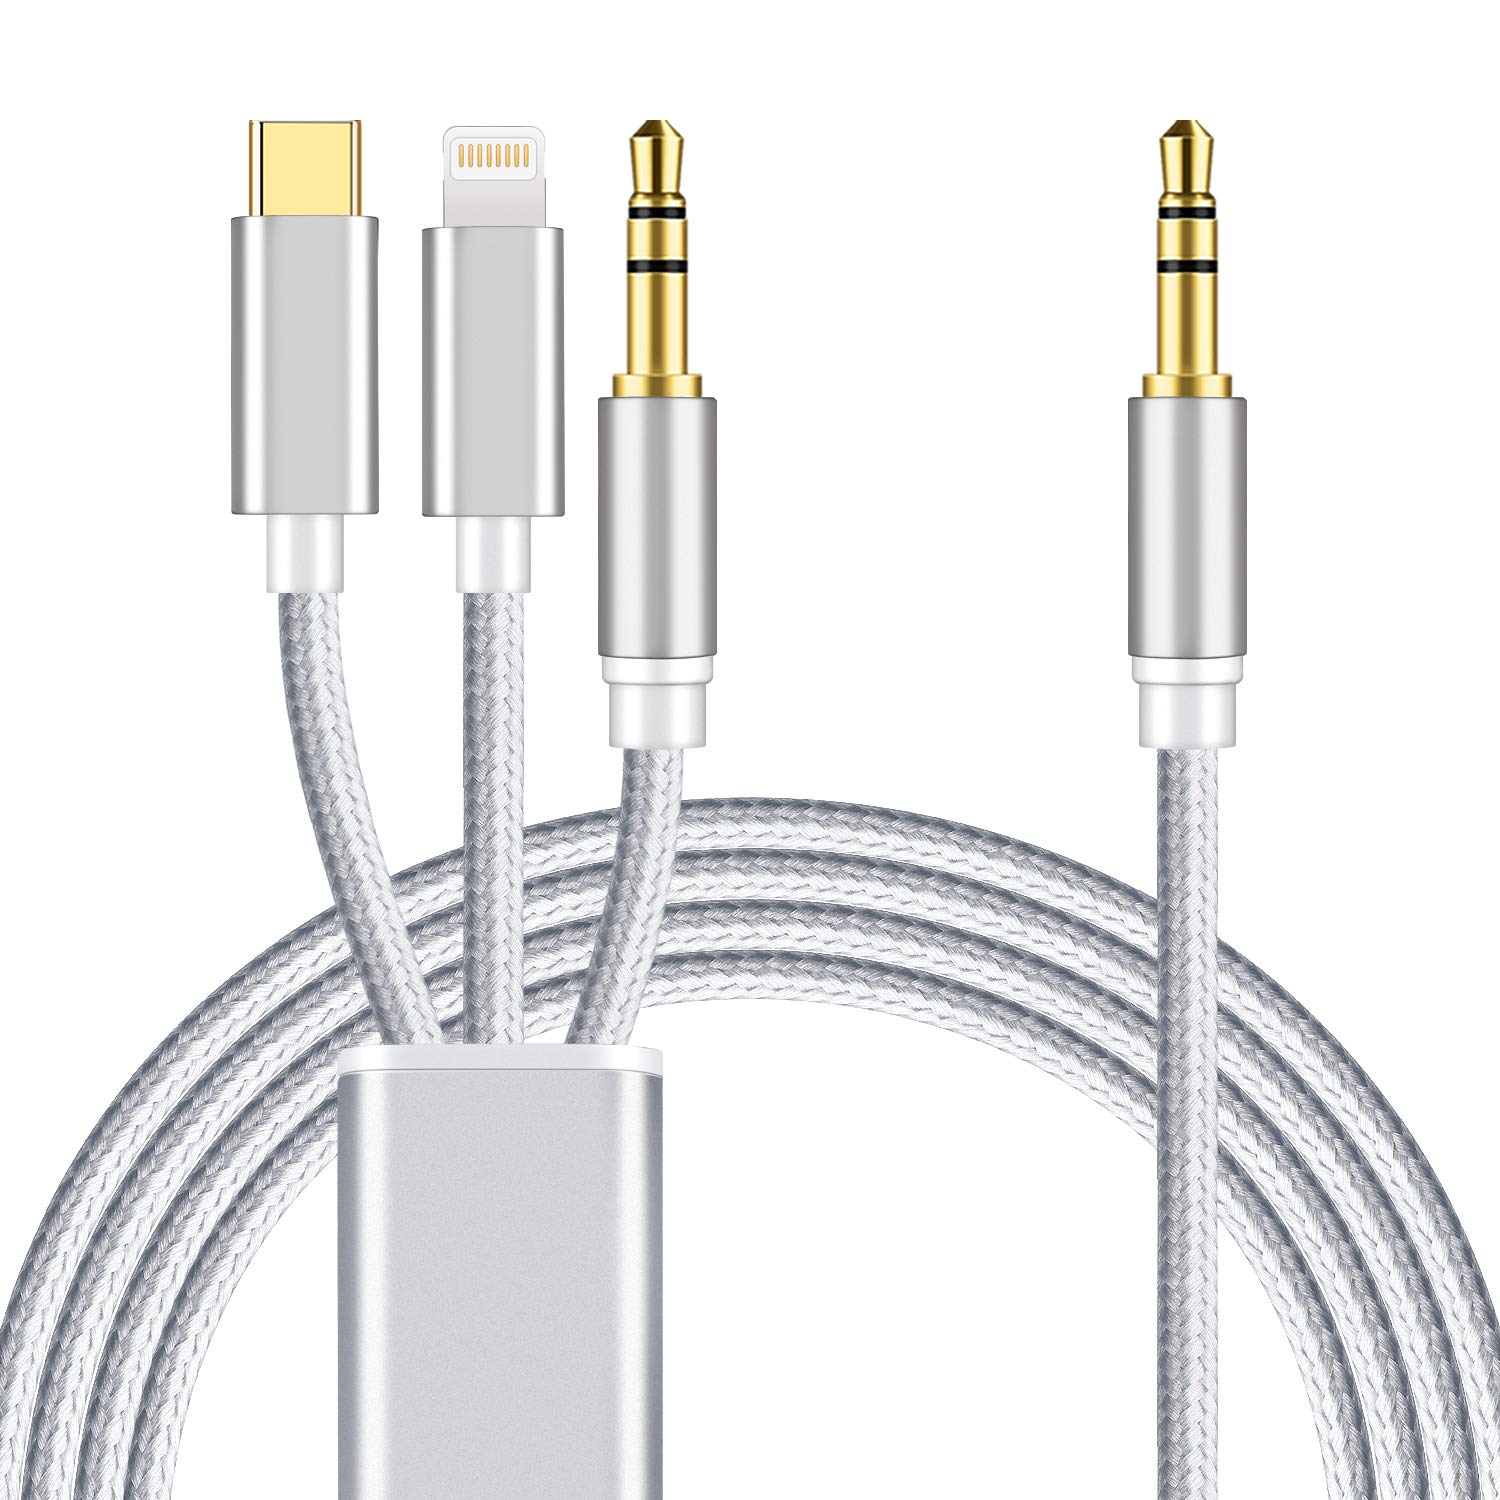 3 in 1 Car Aux Cable, Mxcudu 3 in 1 Headset Audio Cord Car Stereo Aux Cable Compatible with Google Pixel 3/3XL, OnePlus 7Pro/6T, Samsung Galaxy Note 10/S10/S9, iPhone Xs/XR/8 Plus/7 and More (Silver) by Mxcudu